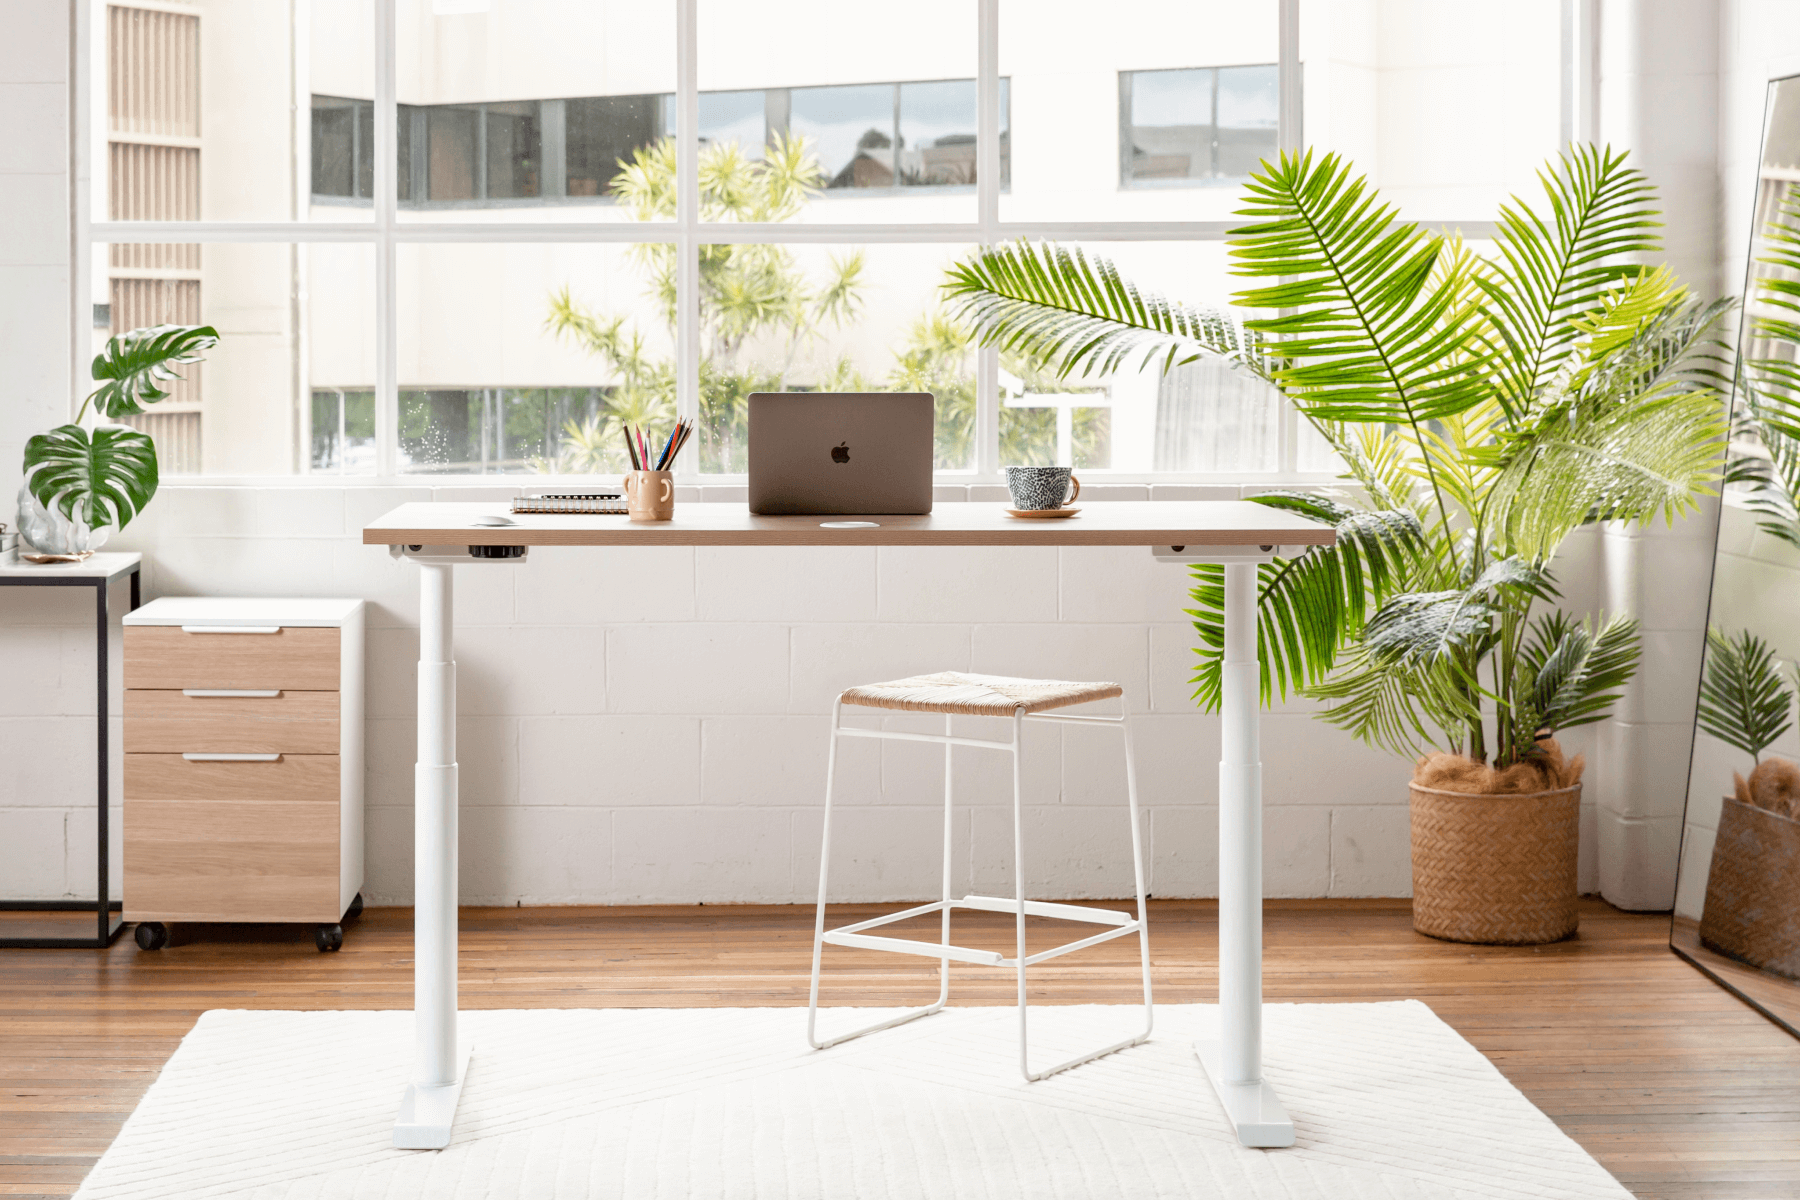 7 Tips to Creating a Holistic Workspace